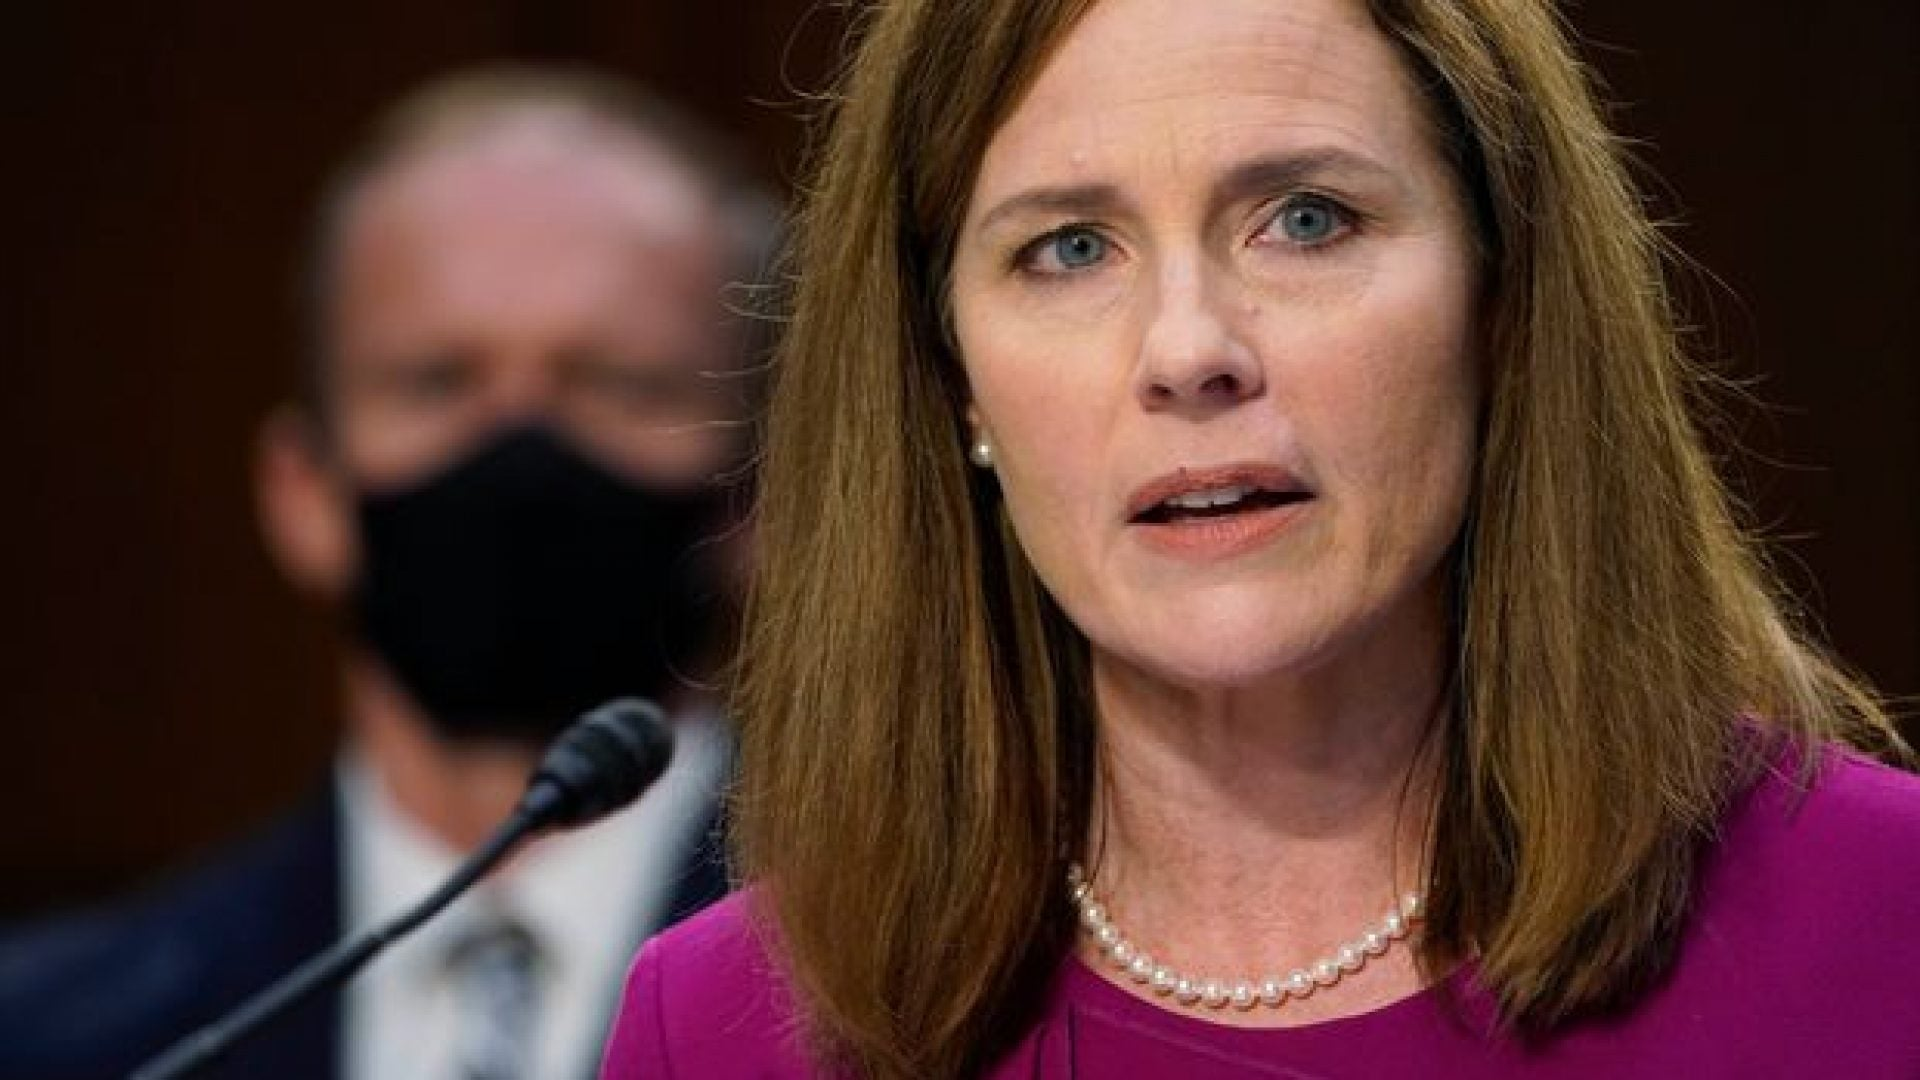 Senate Judiciary Committee Decides To Move Forward With Amy Coney Barrett Nomination